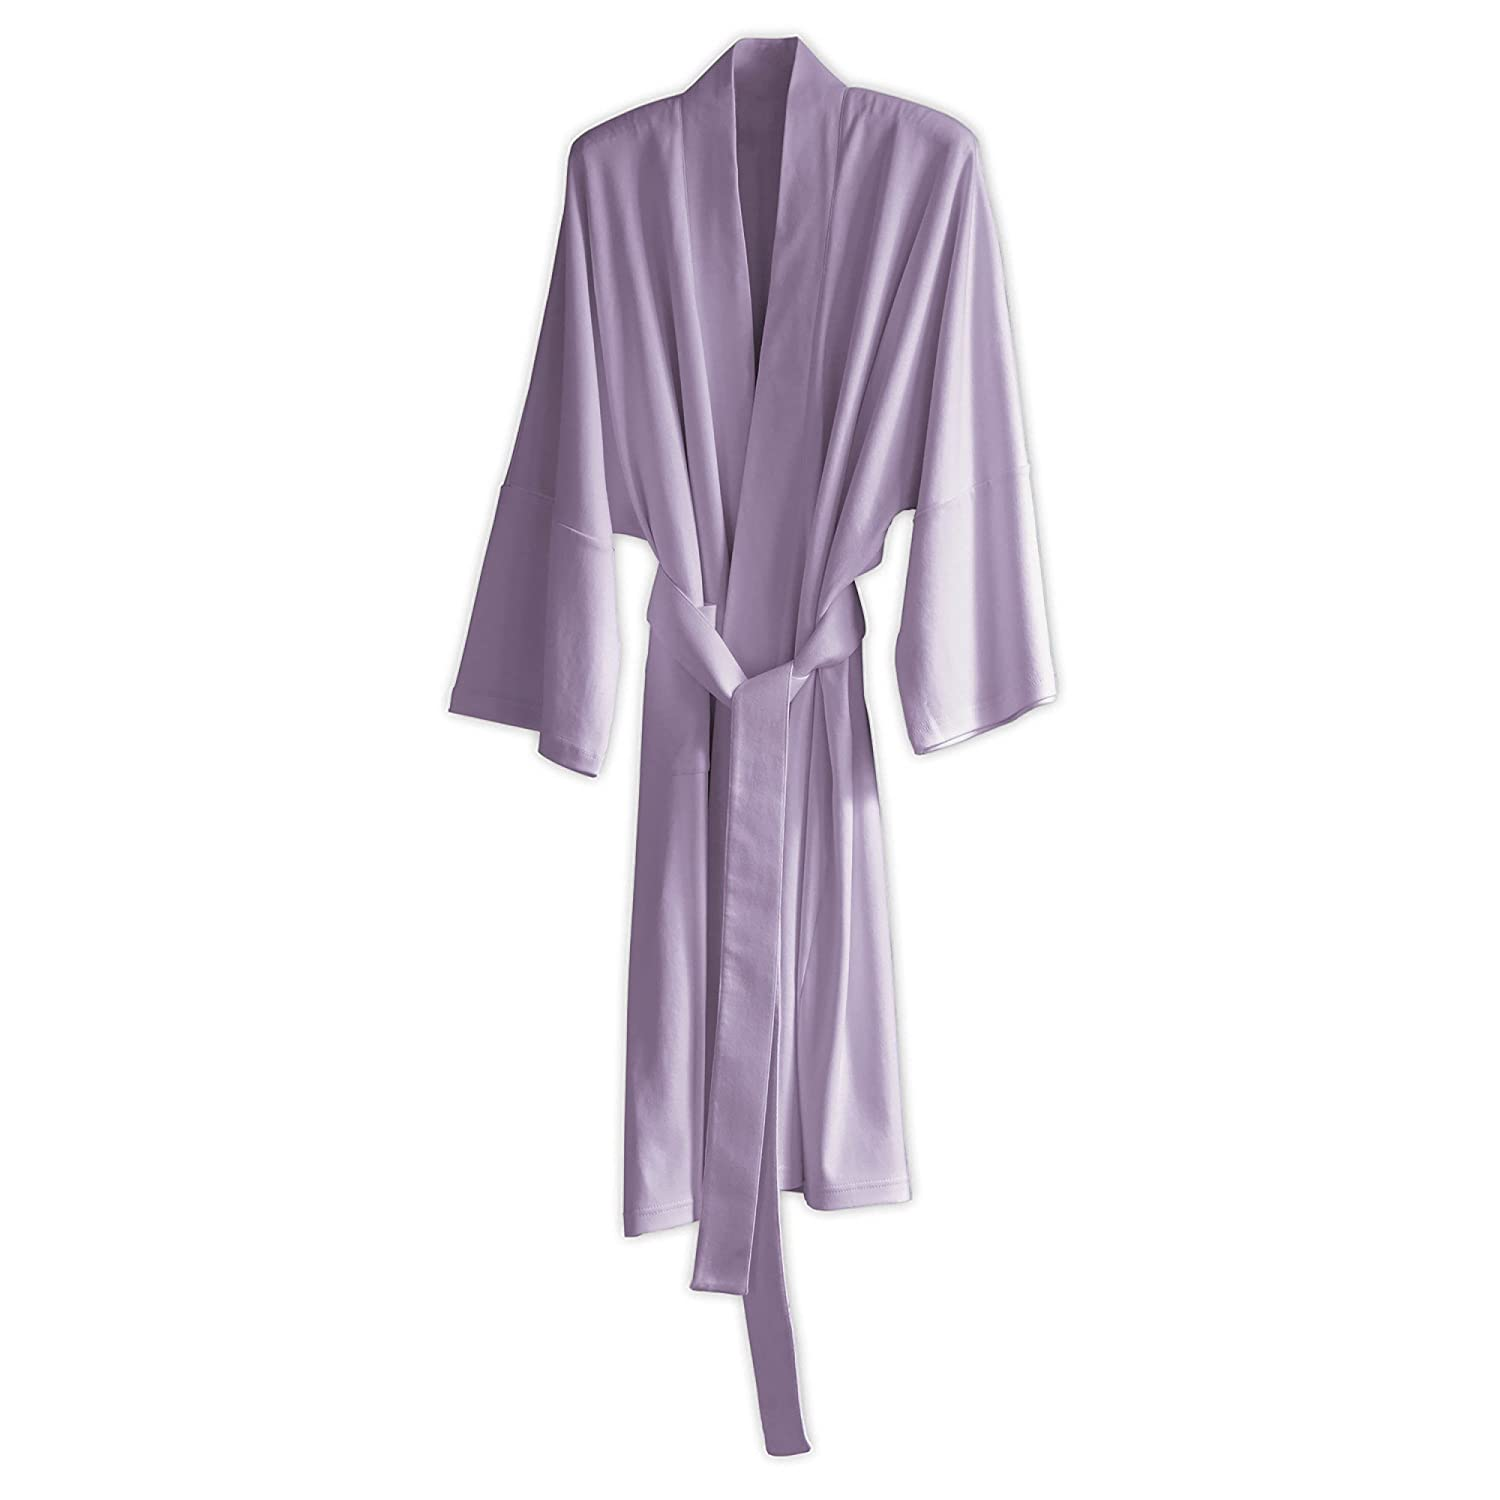 9b627408d4 Amazon.com  Under the Canopy 7113855 Kimono Robe